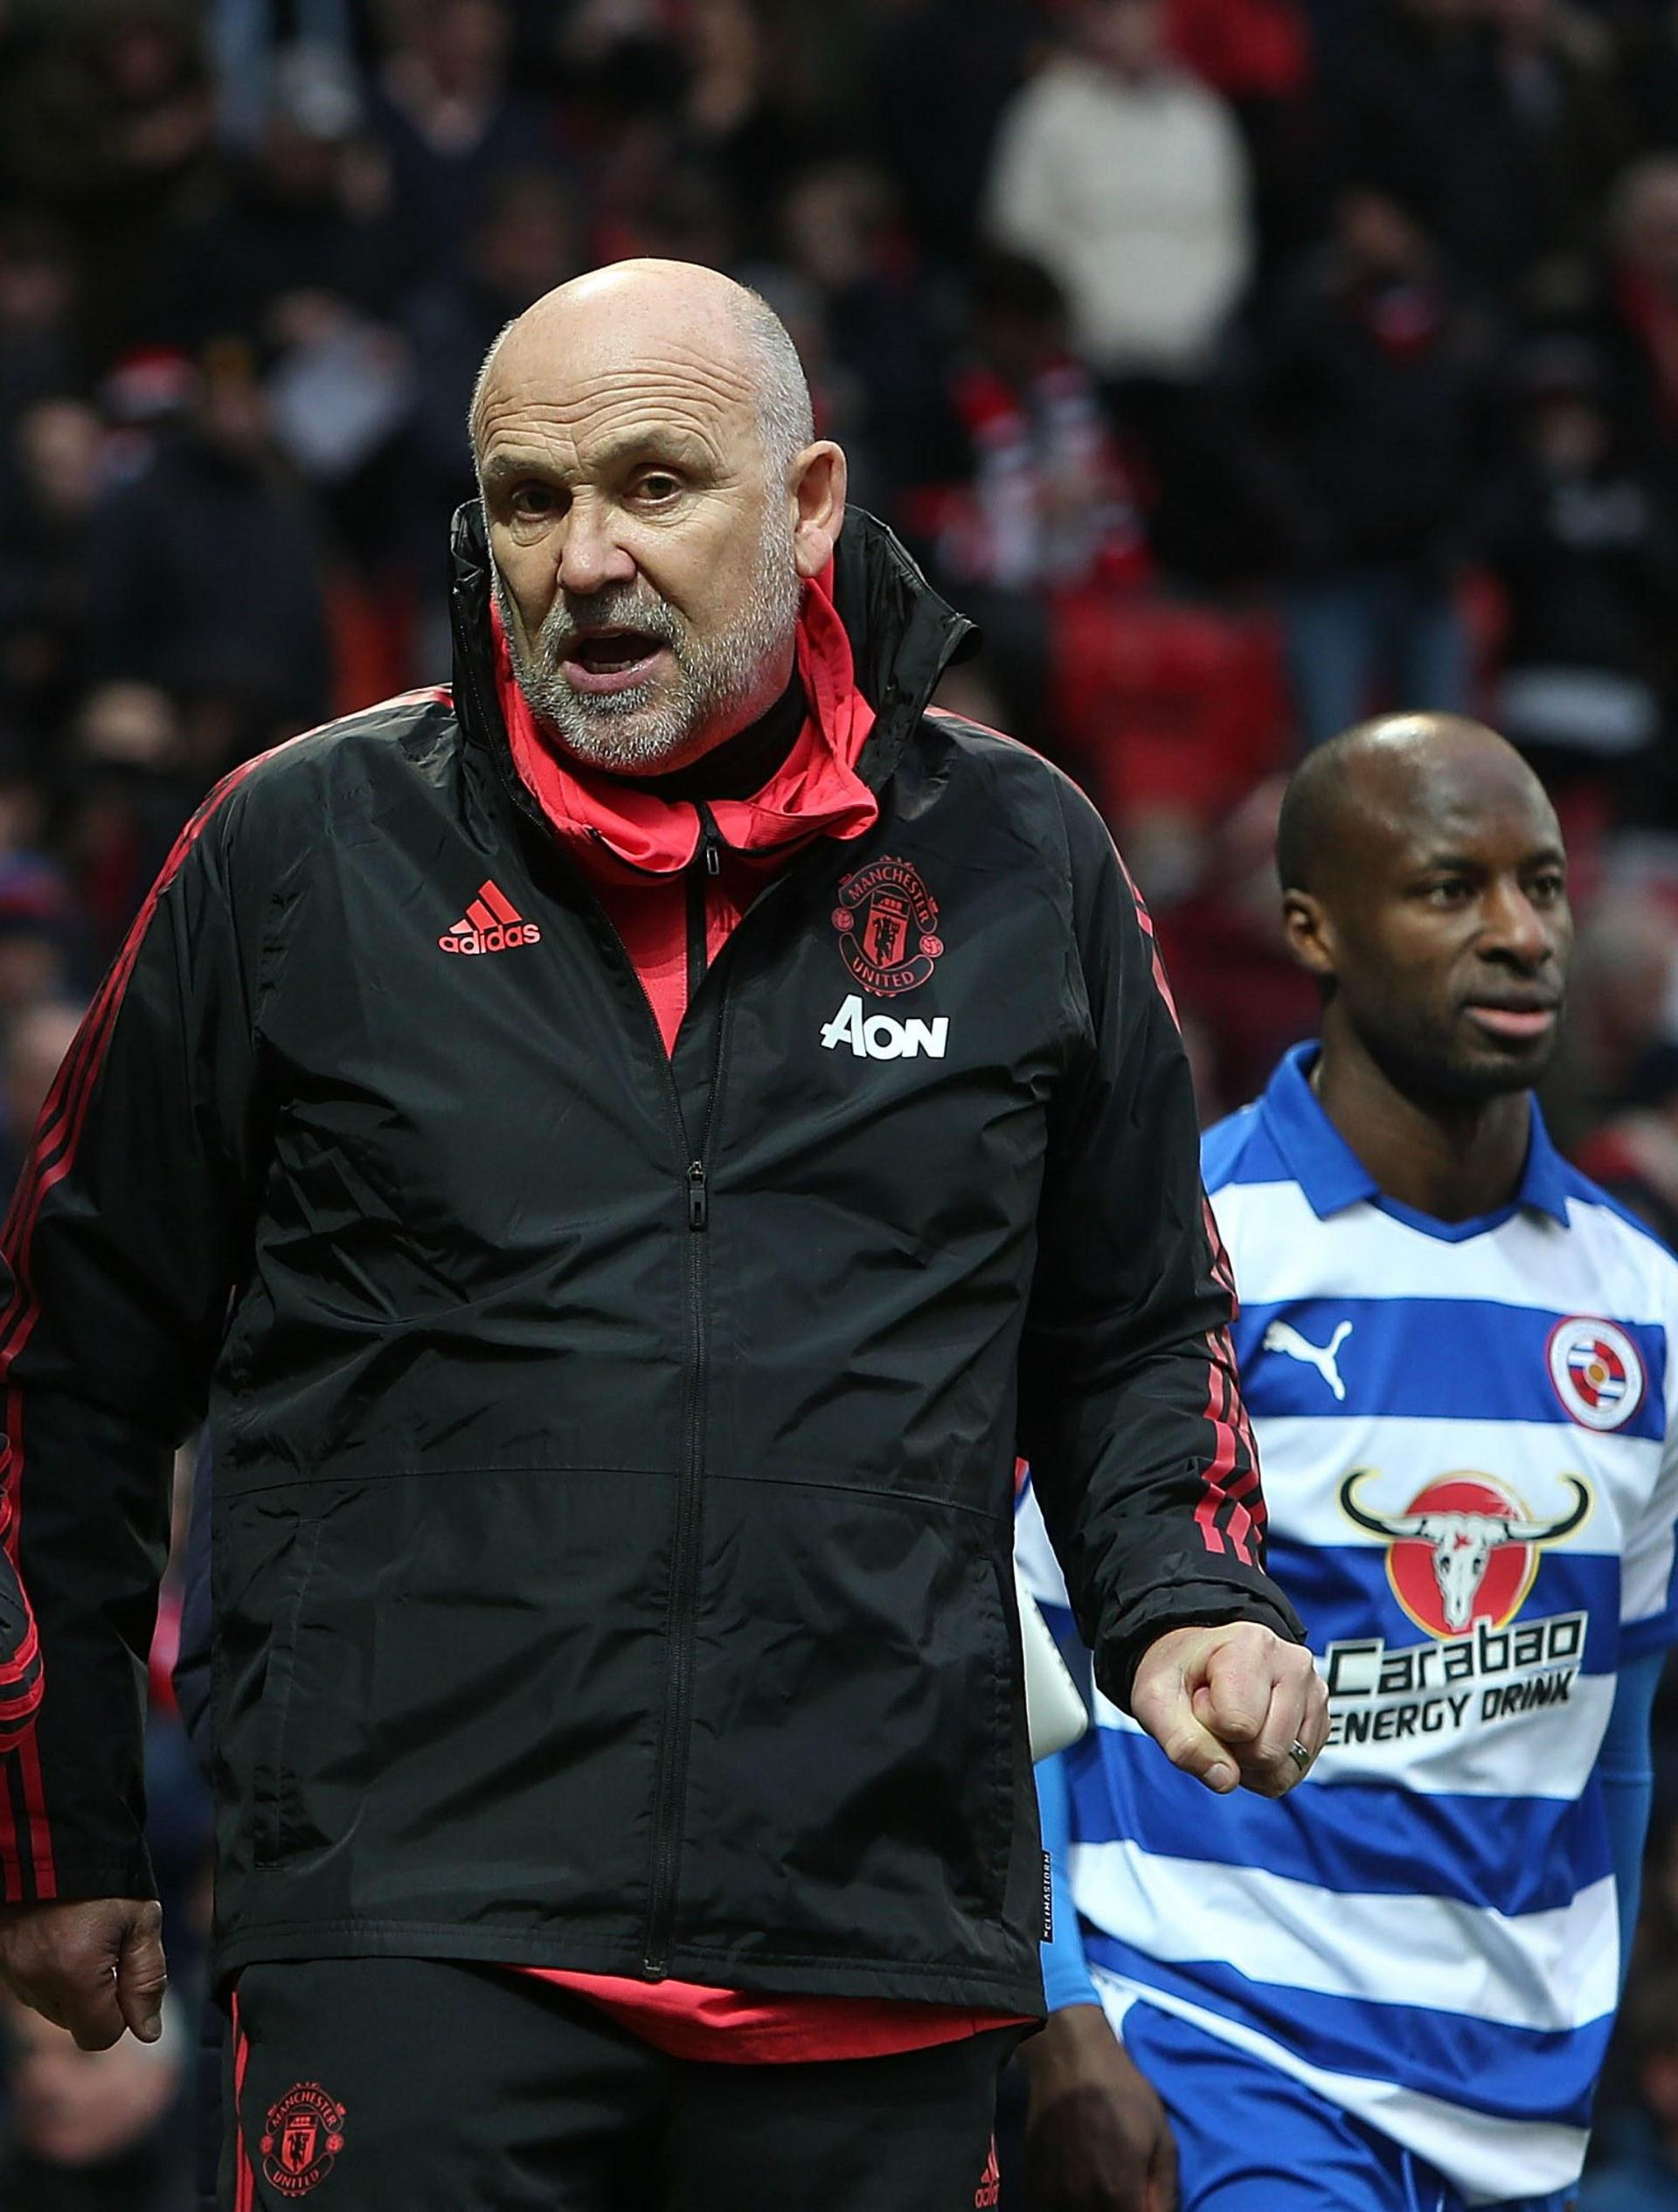 Mike Phelan on the pitch at Old Trafford after United's Emirates FA Cup win over Reading